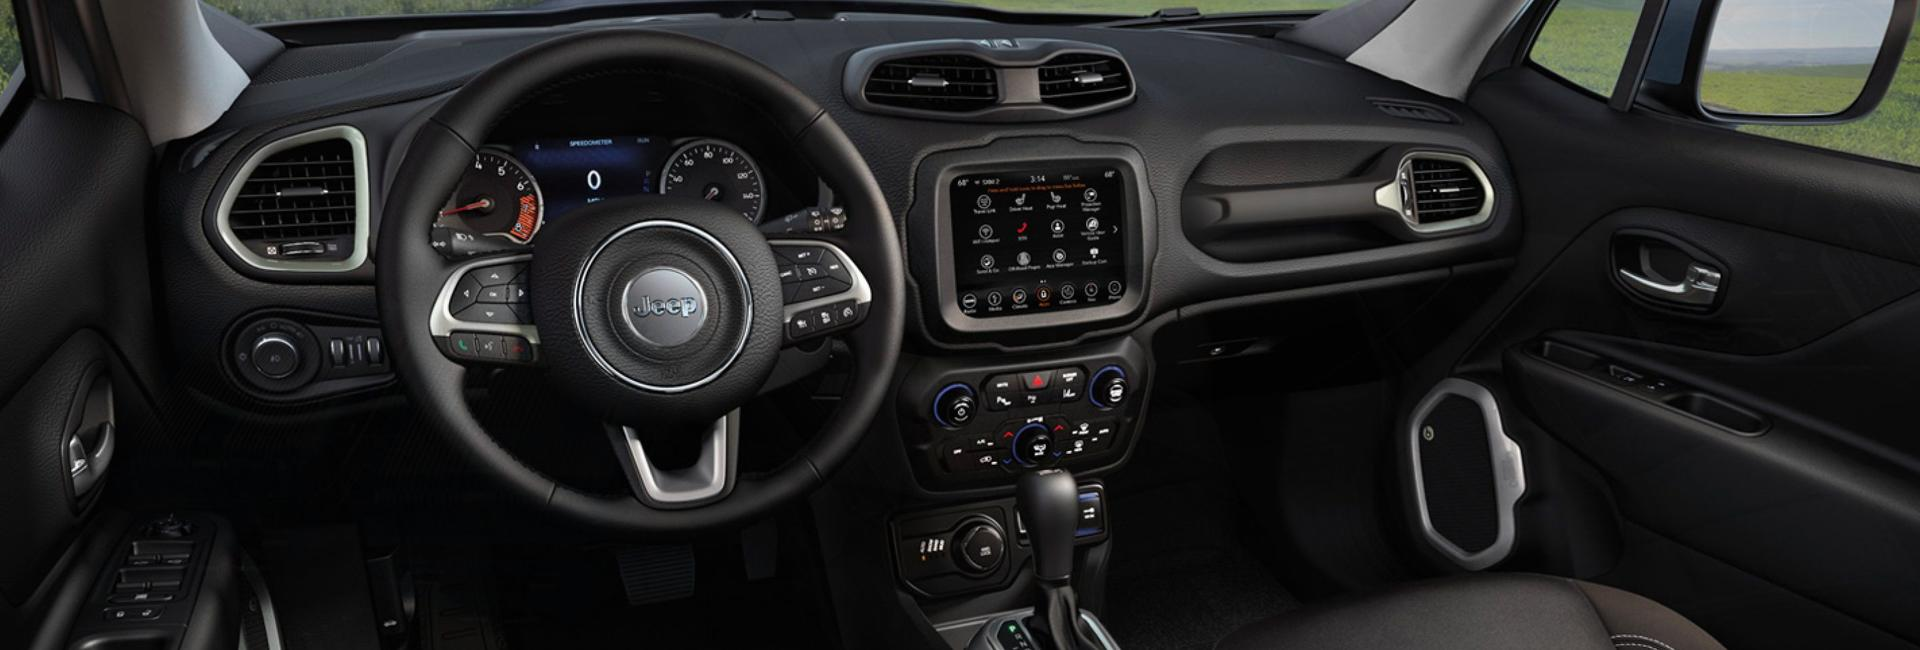 Picture of the interior of the 2020 Jeep Renegade.